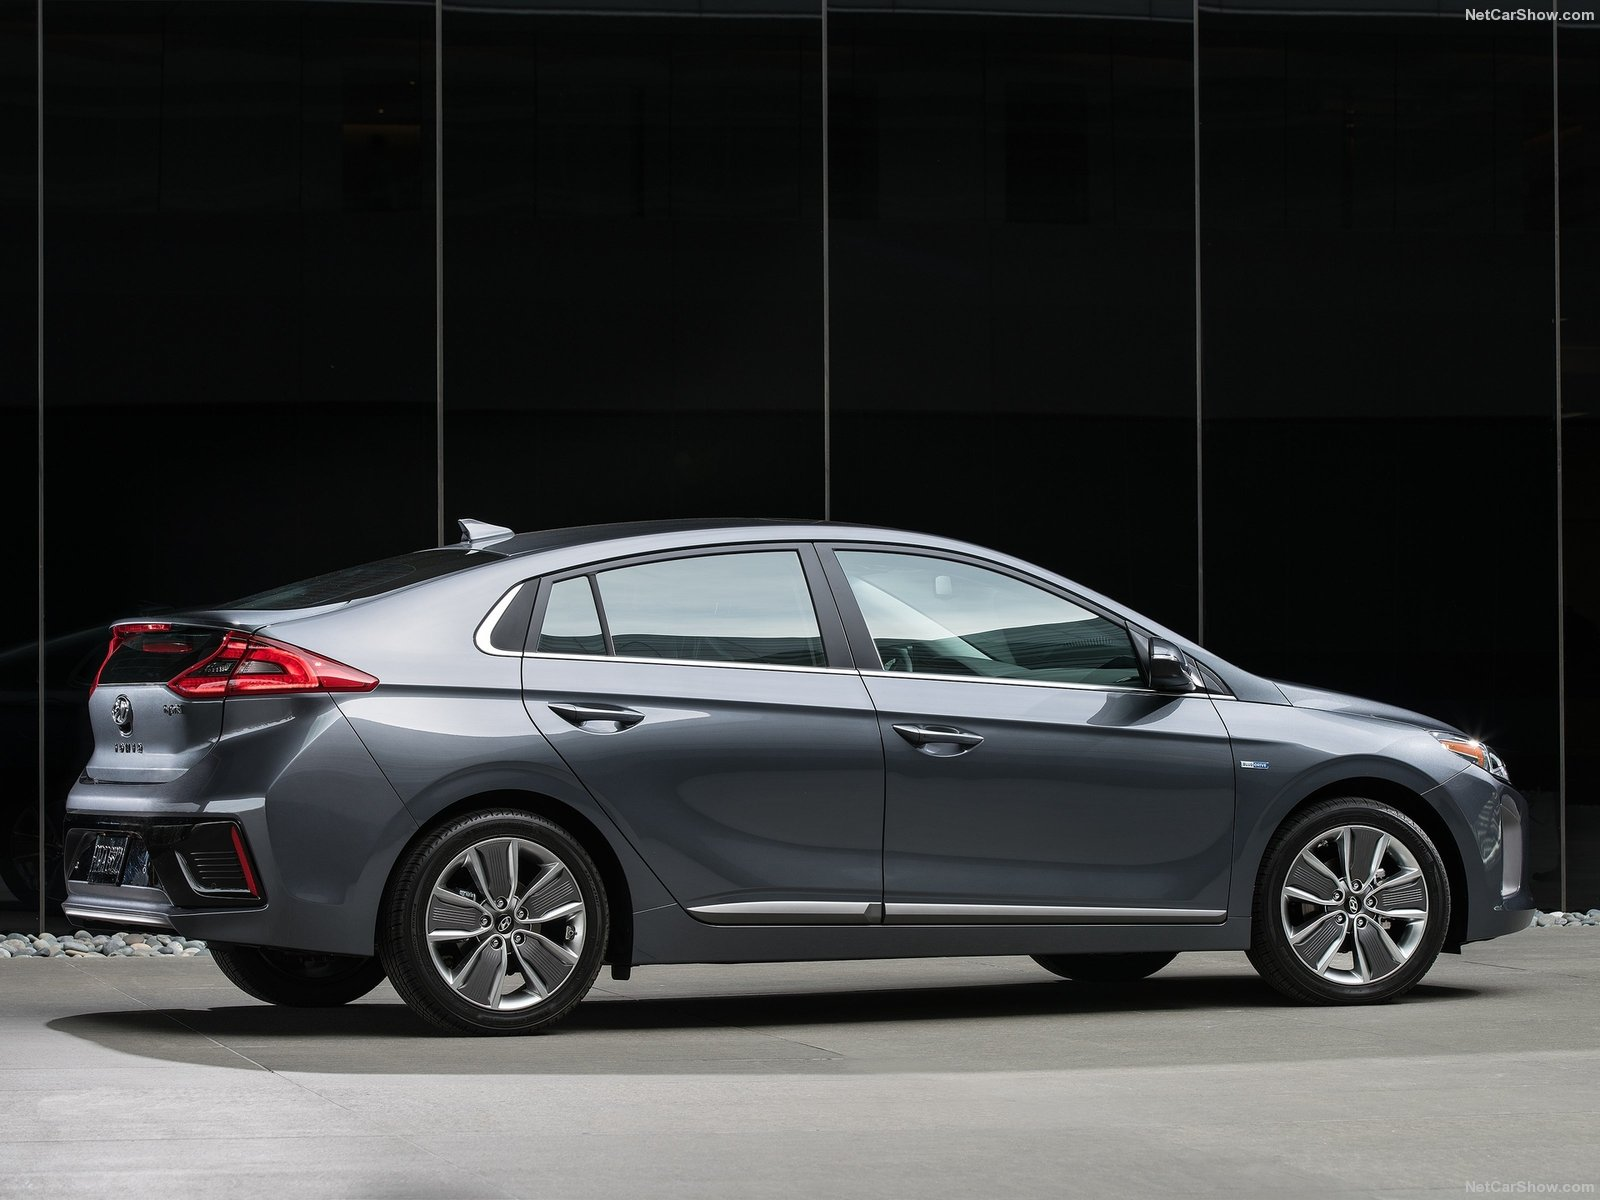 Hyundai-Ioniq_US-Version-2017-1600-12.jpg